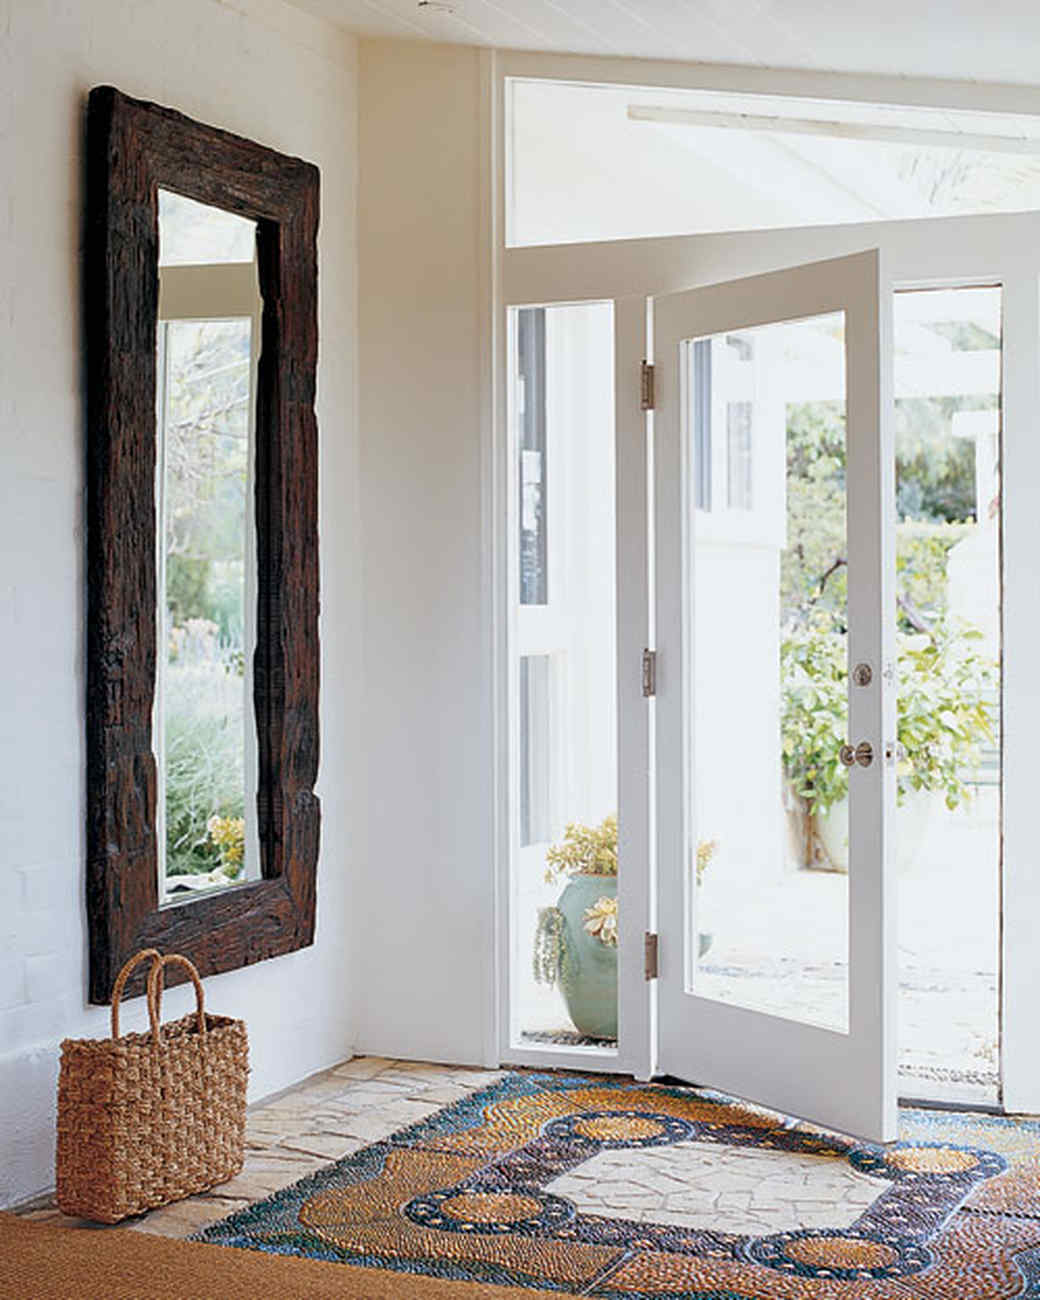 This Lantern Inspired House Design Lights Up A California: Home Tour: A Light And Bright California Home